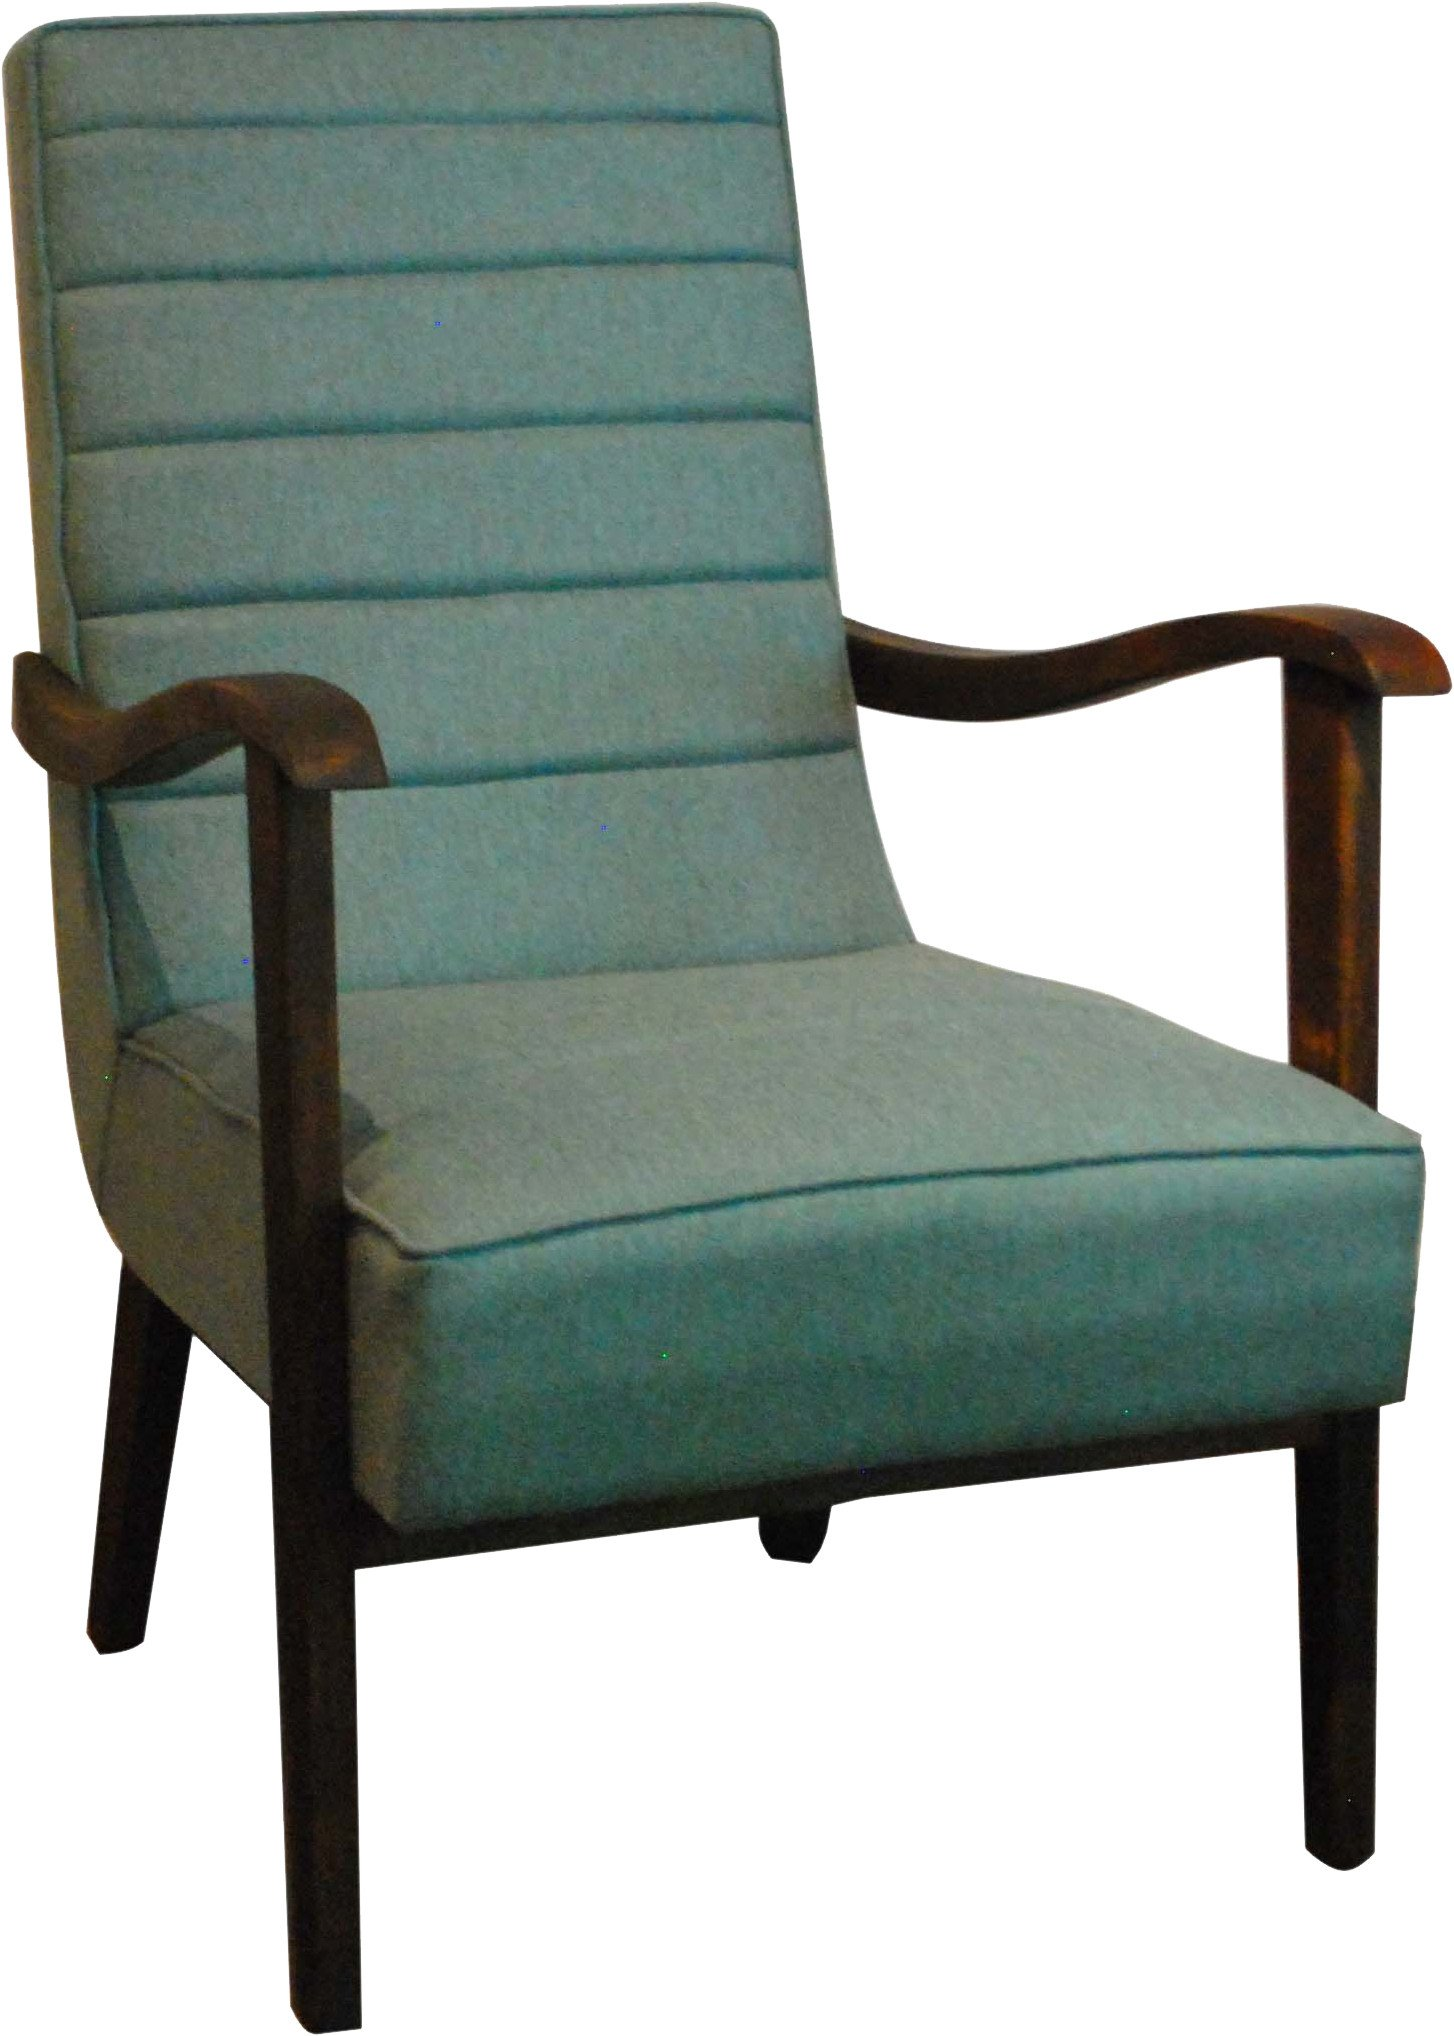 Armchair Mint, Poland, 1950s